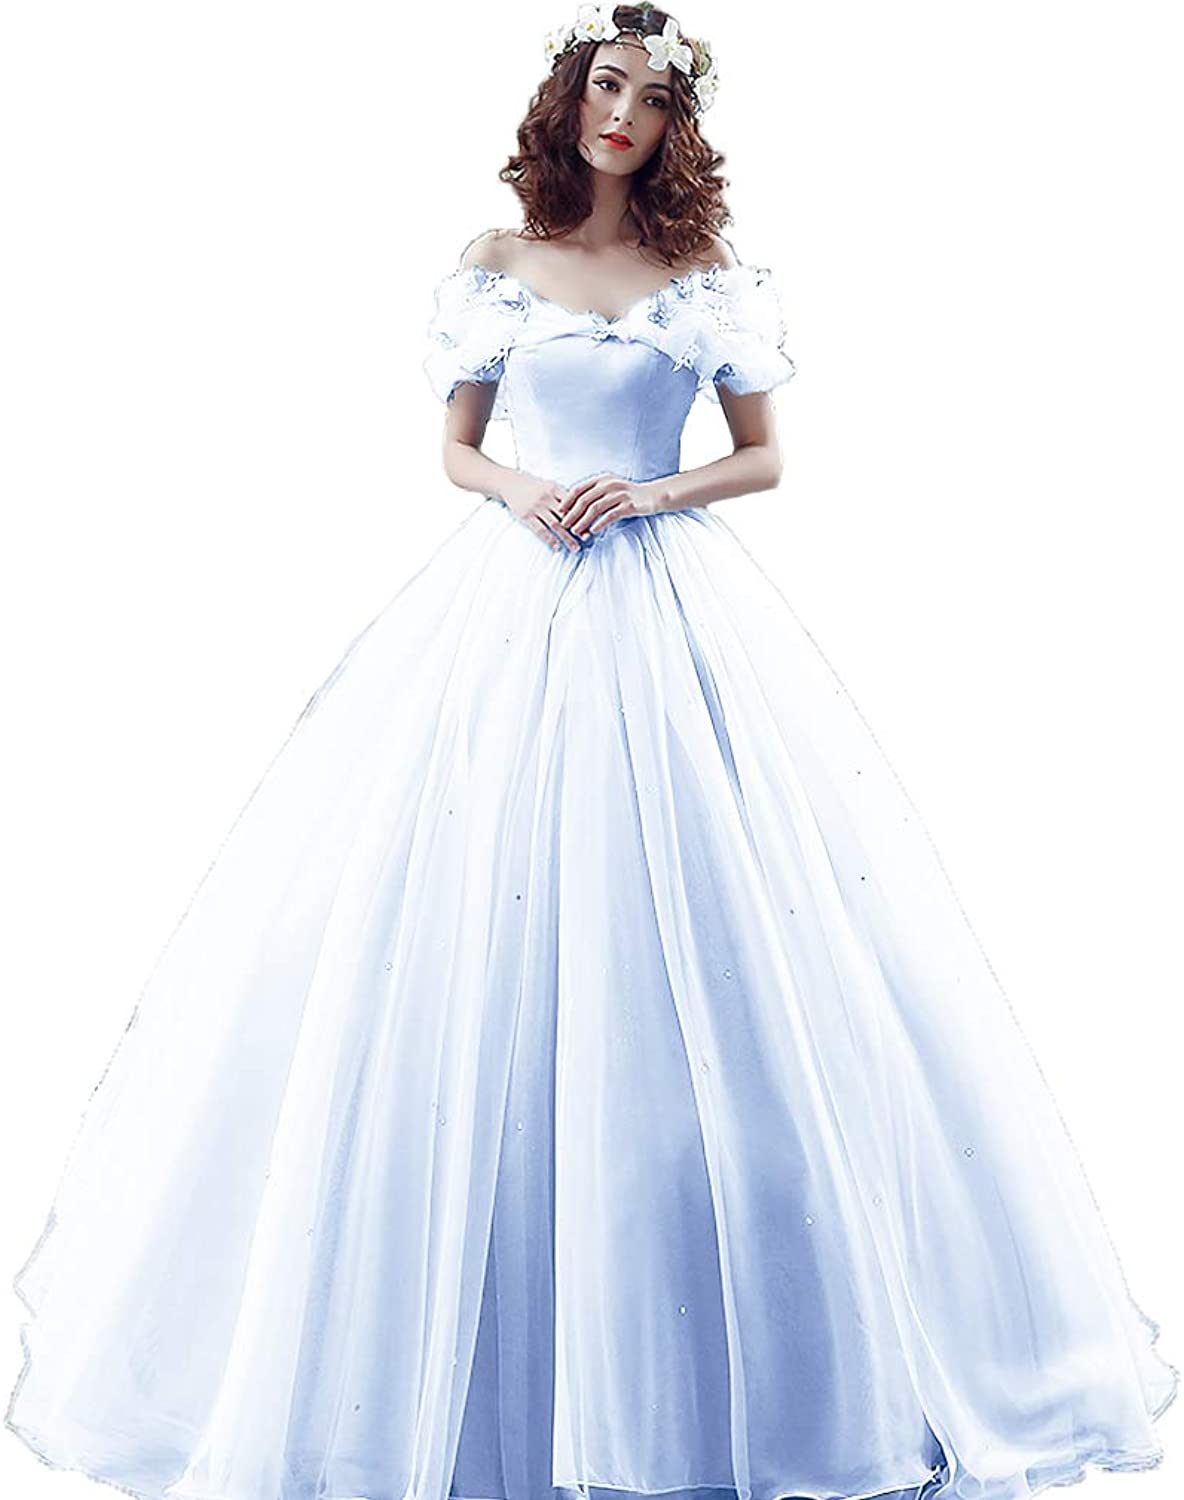 Awishwill Women's Wedding Dresses Ball Gown Sweetheart Bridal Gown Evening Dress